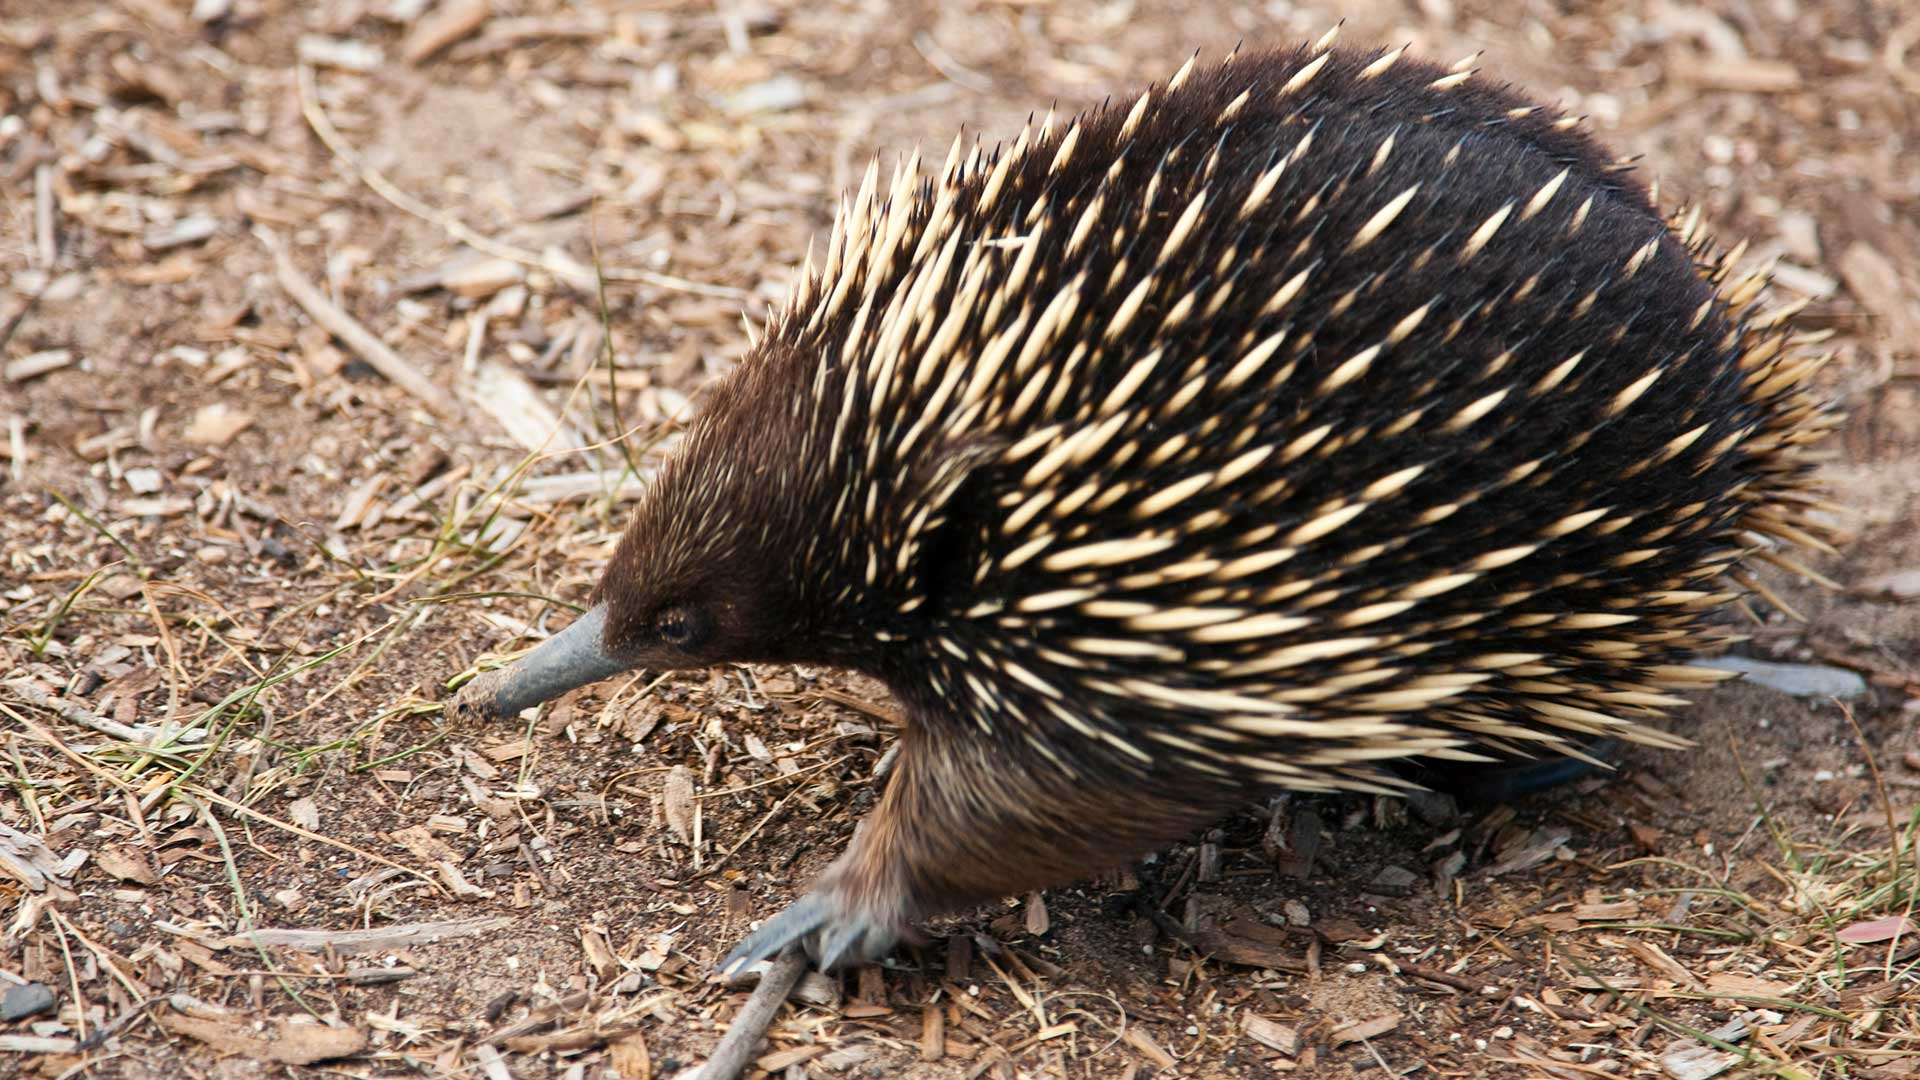 A short-nosed echidna or spiny anteater.